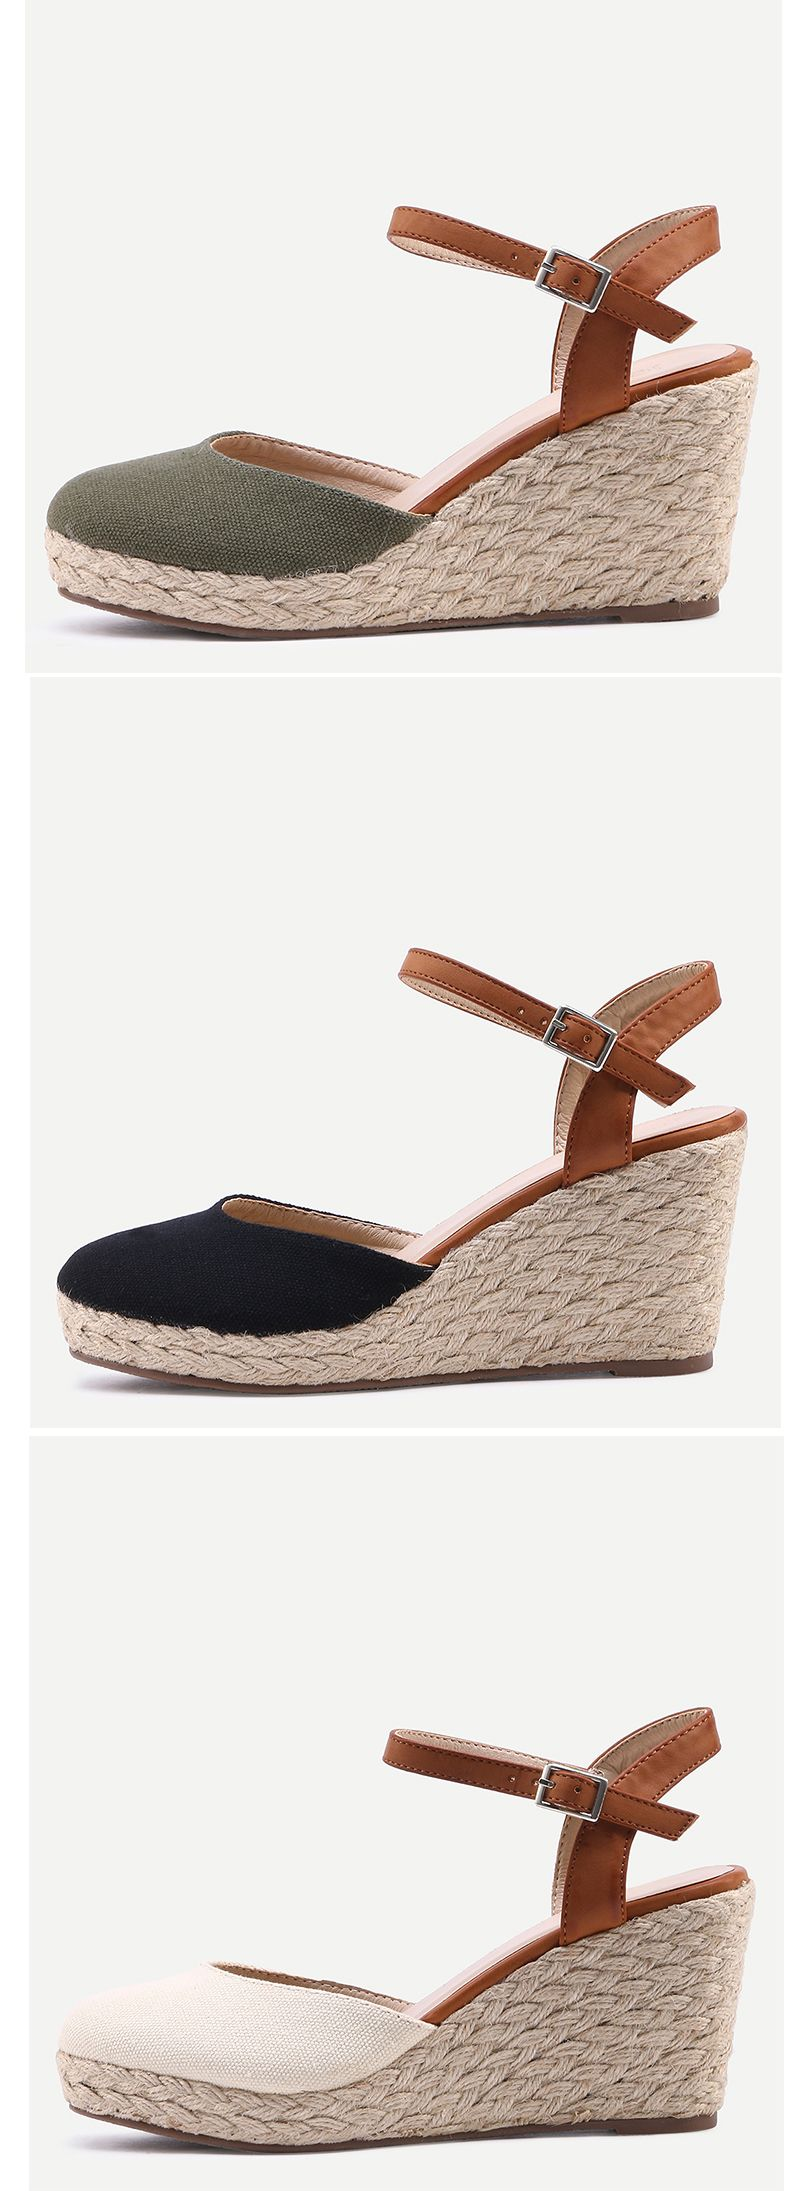 Round Toe Ankle Strap Wedge Sandals. Vintage wedge sandals with ankle strap and round toe. Lovely & comfortable shoes for summer. #shoewedges